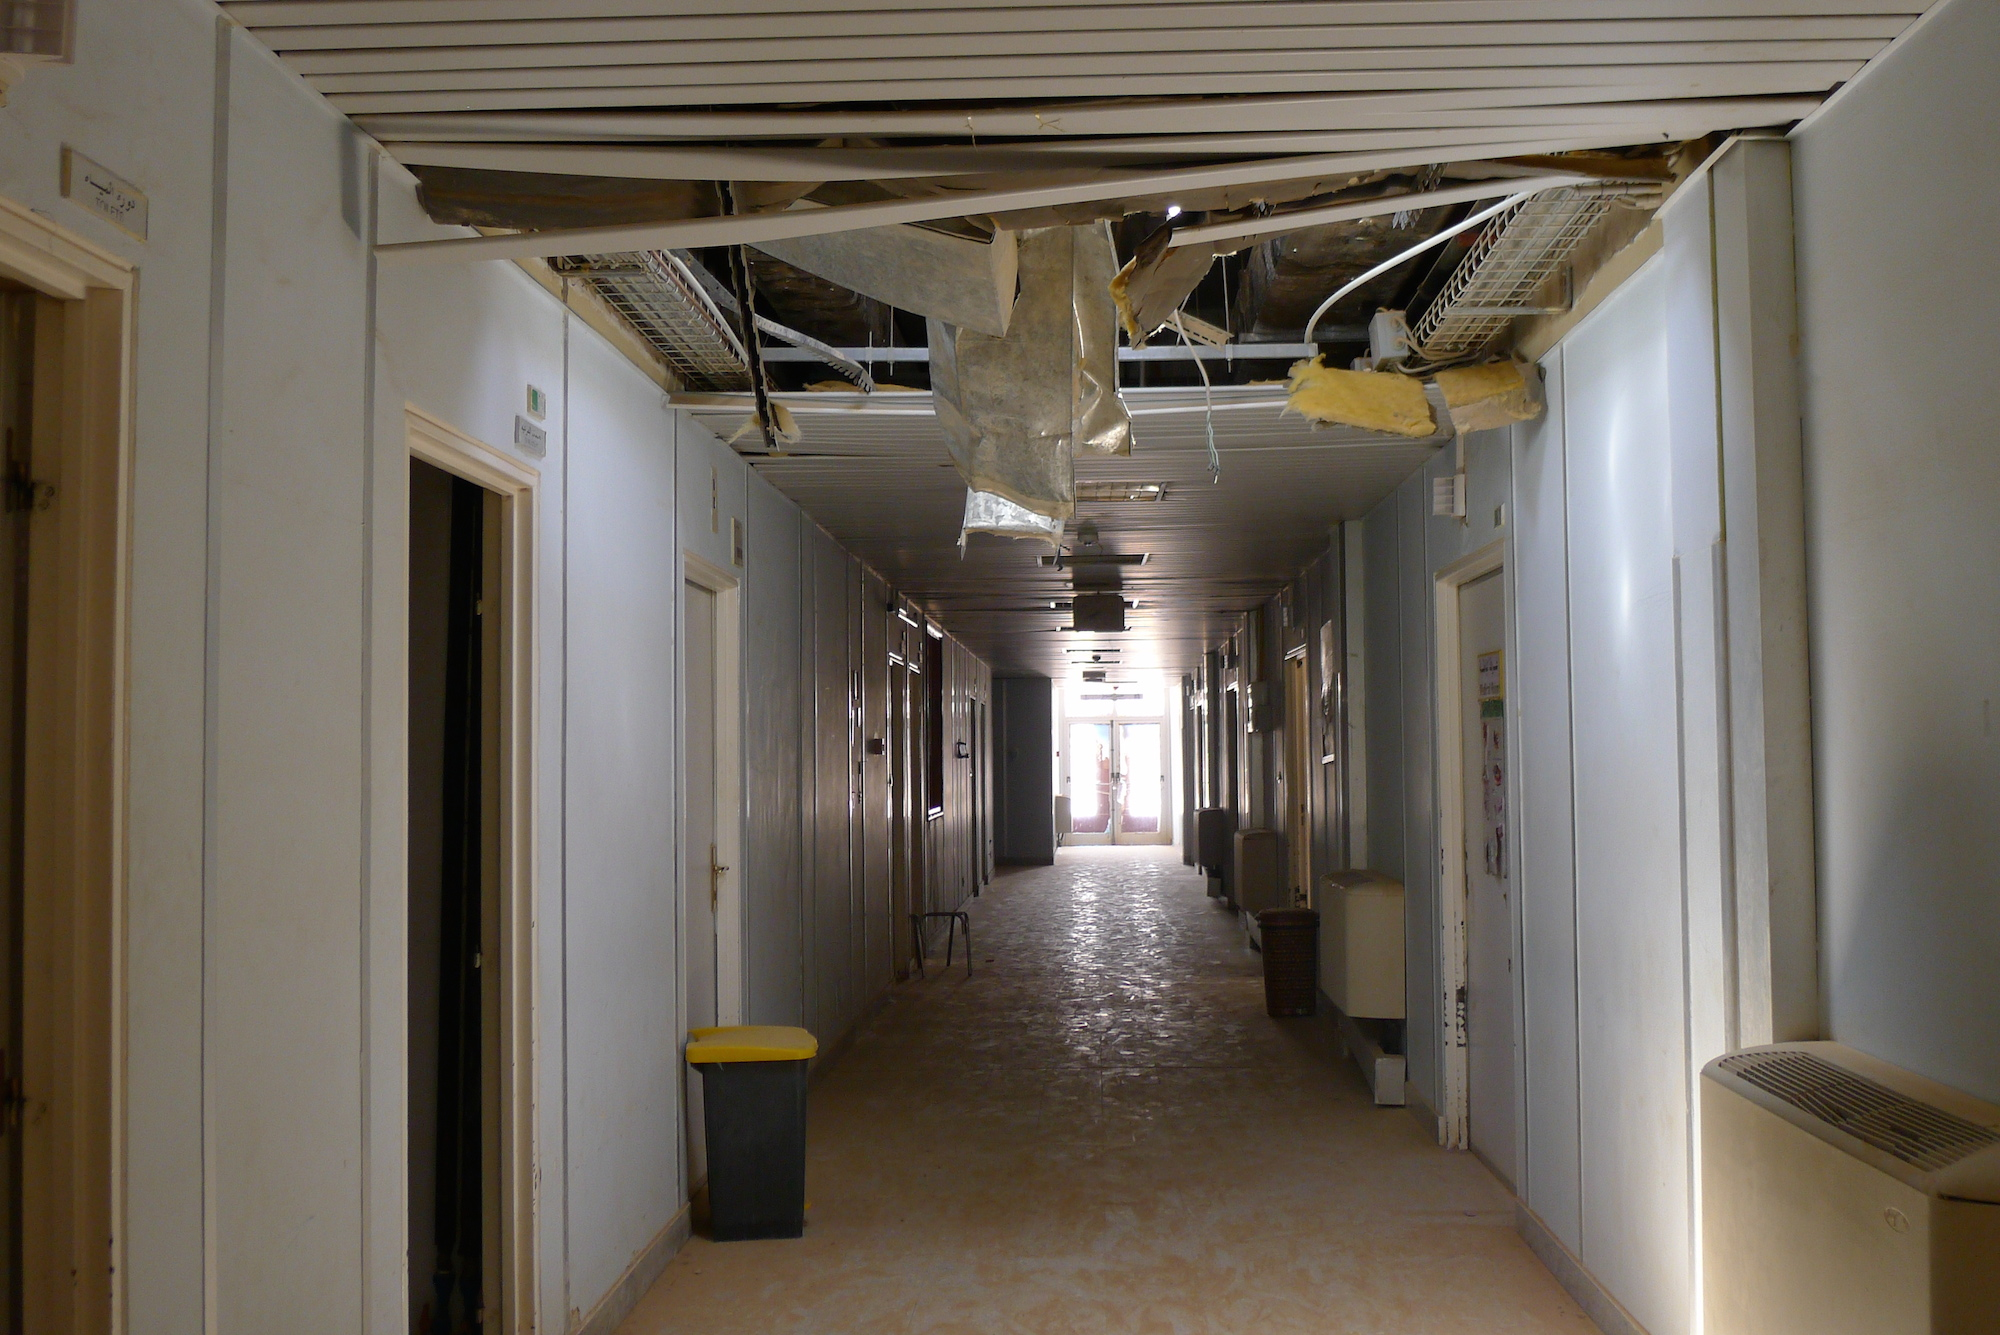 The former maternity wing of Ubari hospital in southern Libya was shelled during fighting